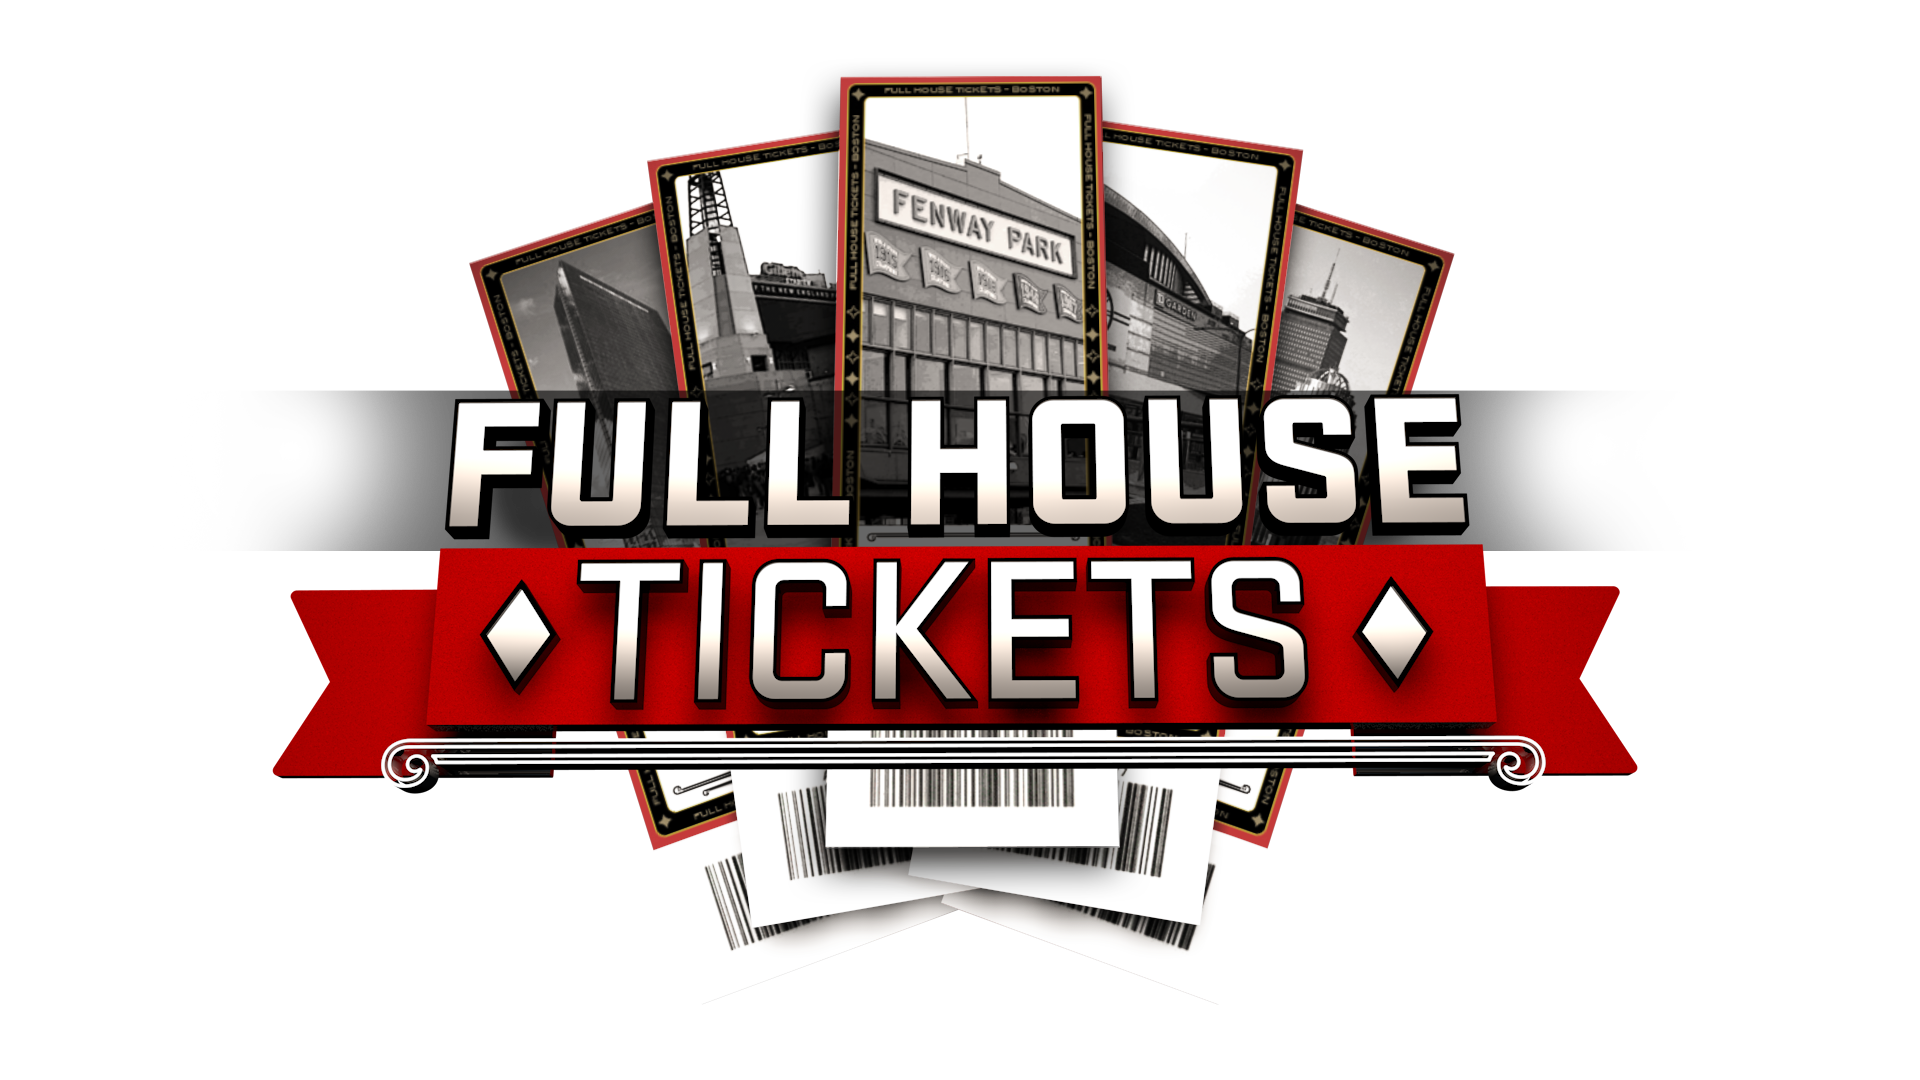 Full House Tickets